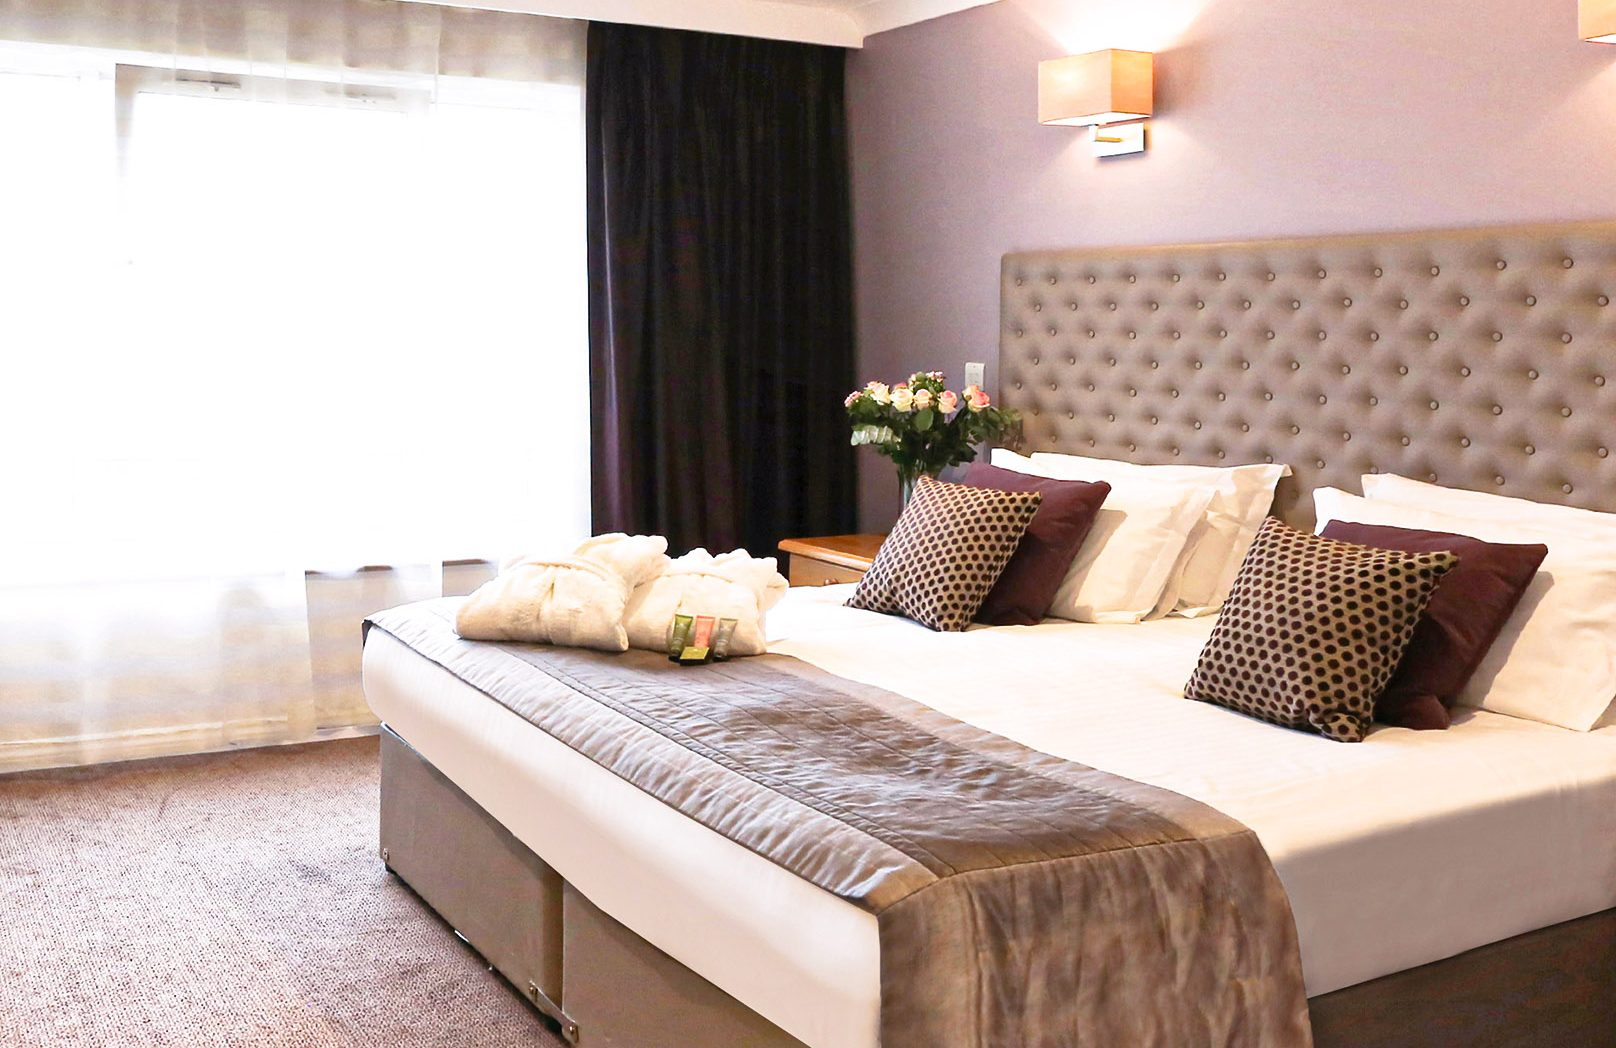 Autumn Escape Hotel Offer - Stoke by Nayland near Colchester